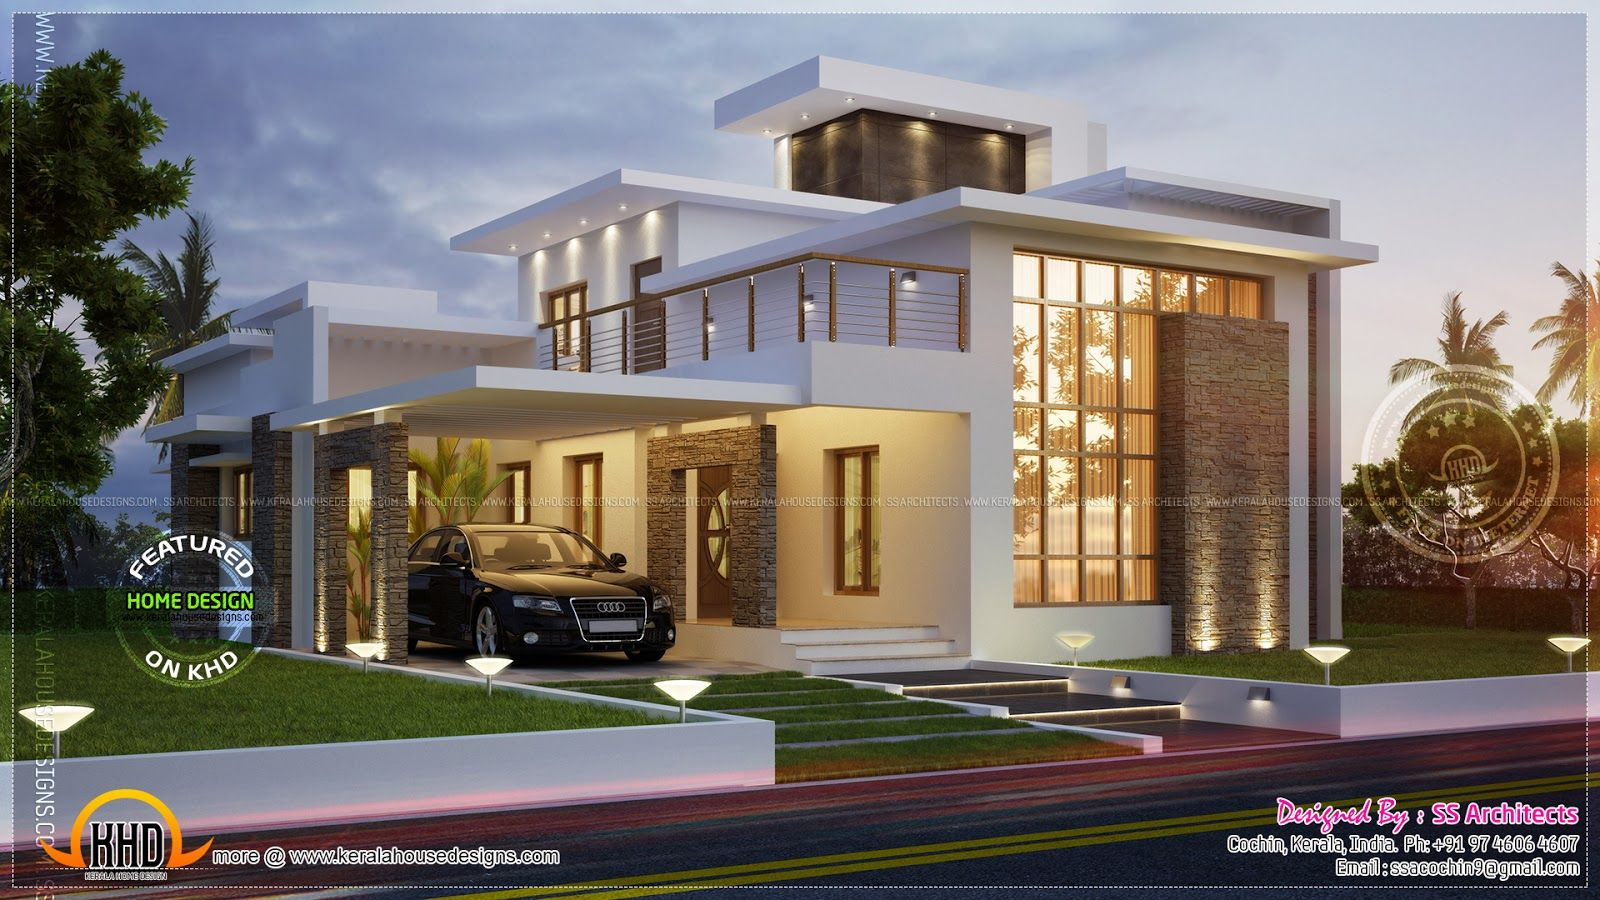 Sq feet contemporary house kerala home design floor plans - Home design at sq ...